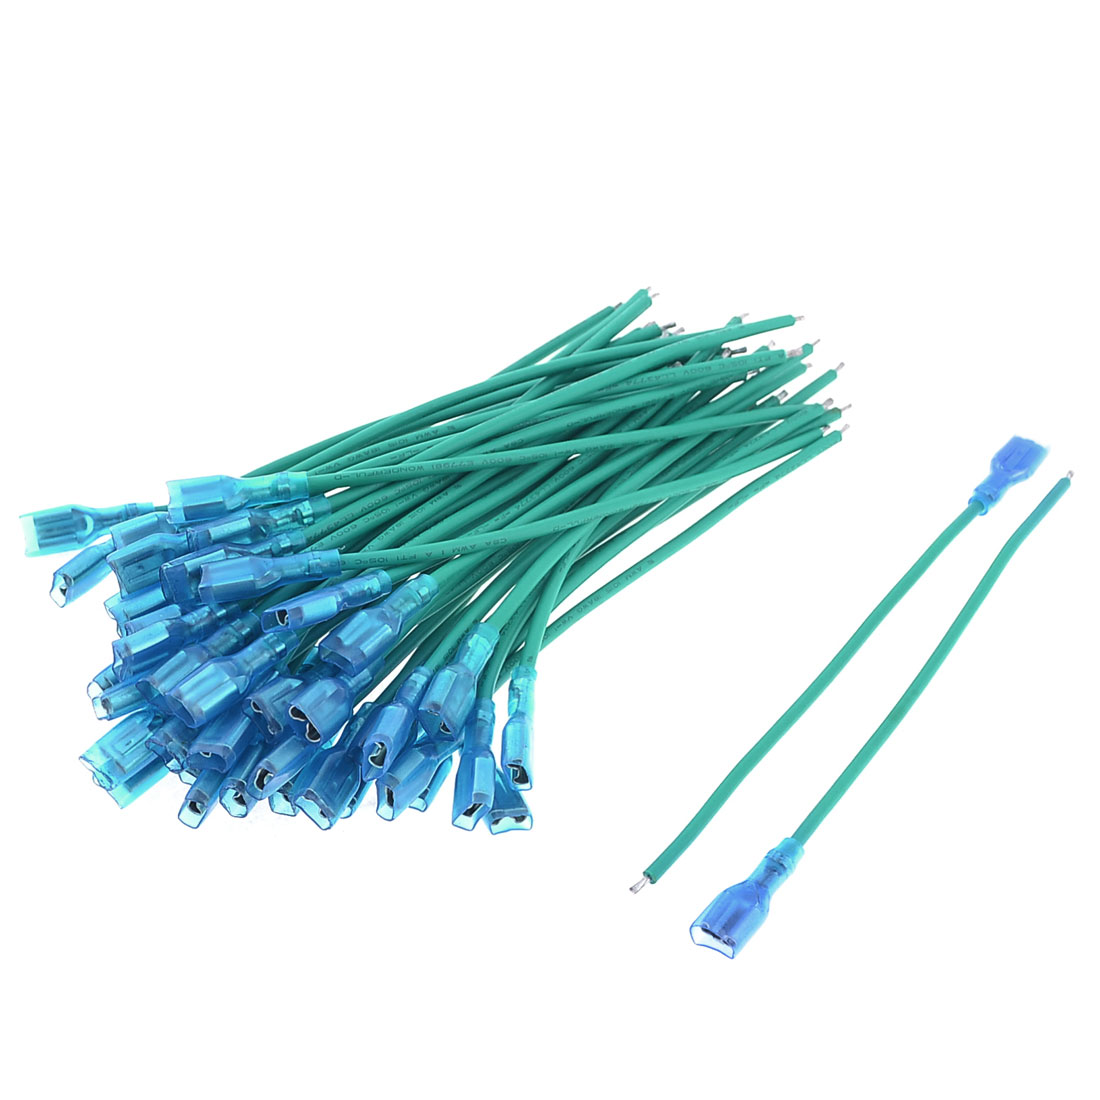 50 Pcs Motorcycle Car Speaker Blue Green Wire Connector Coil Cable 14cm Length